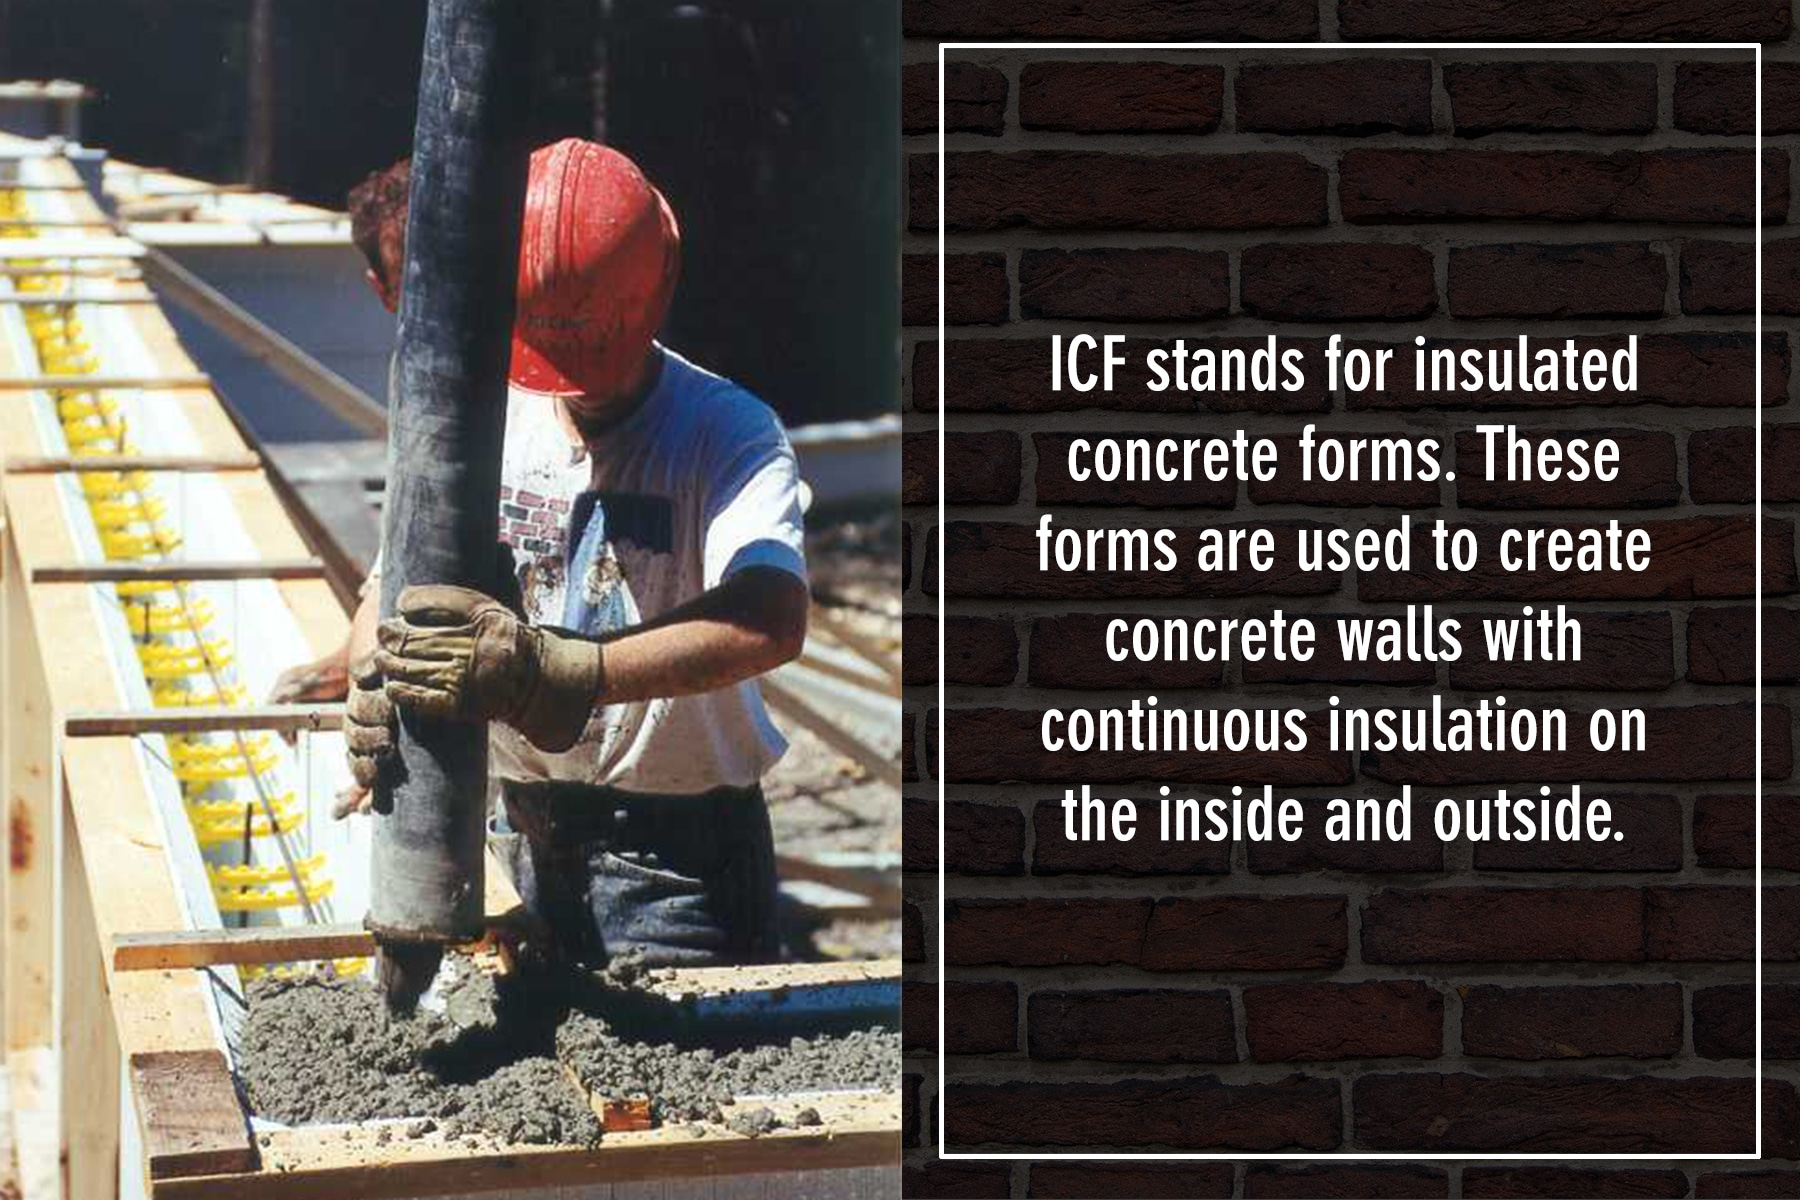 ICF stands for insulated concrete forms